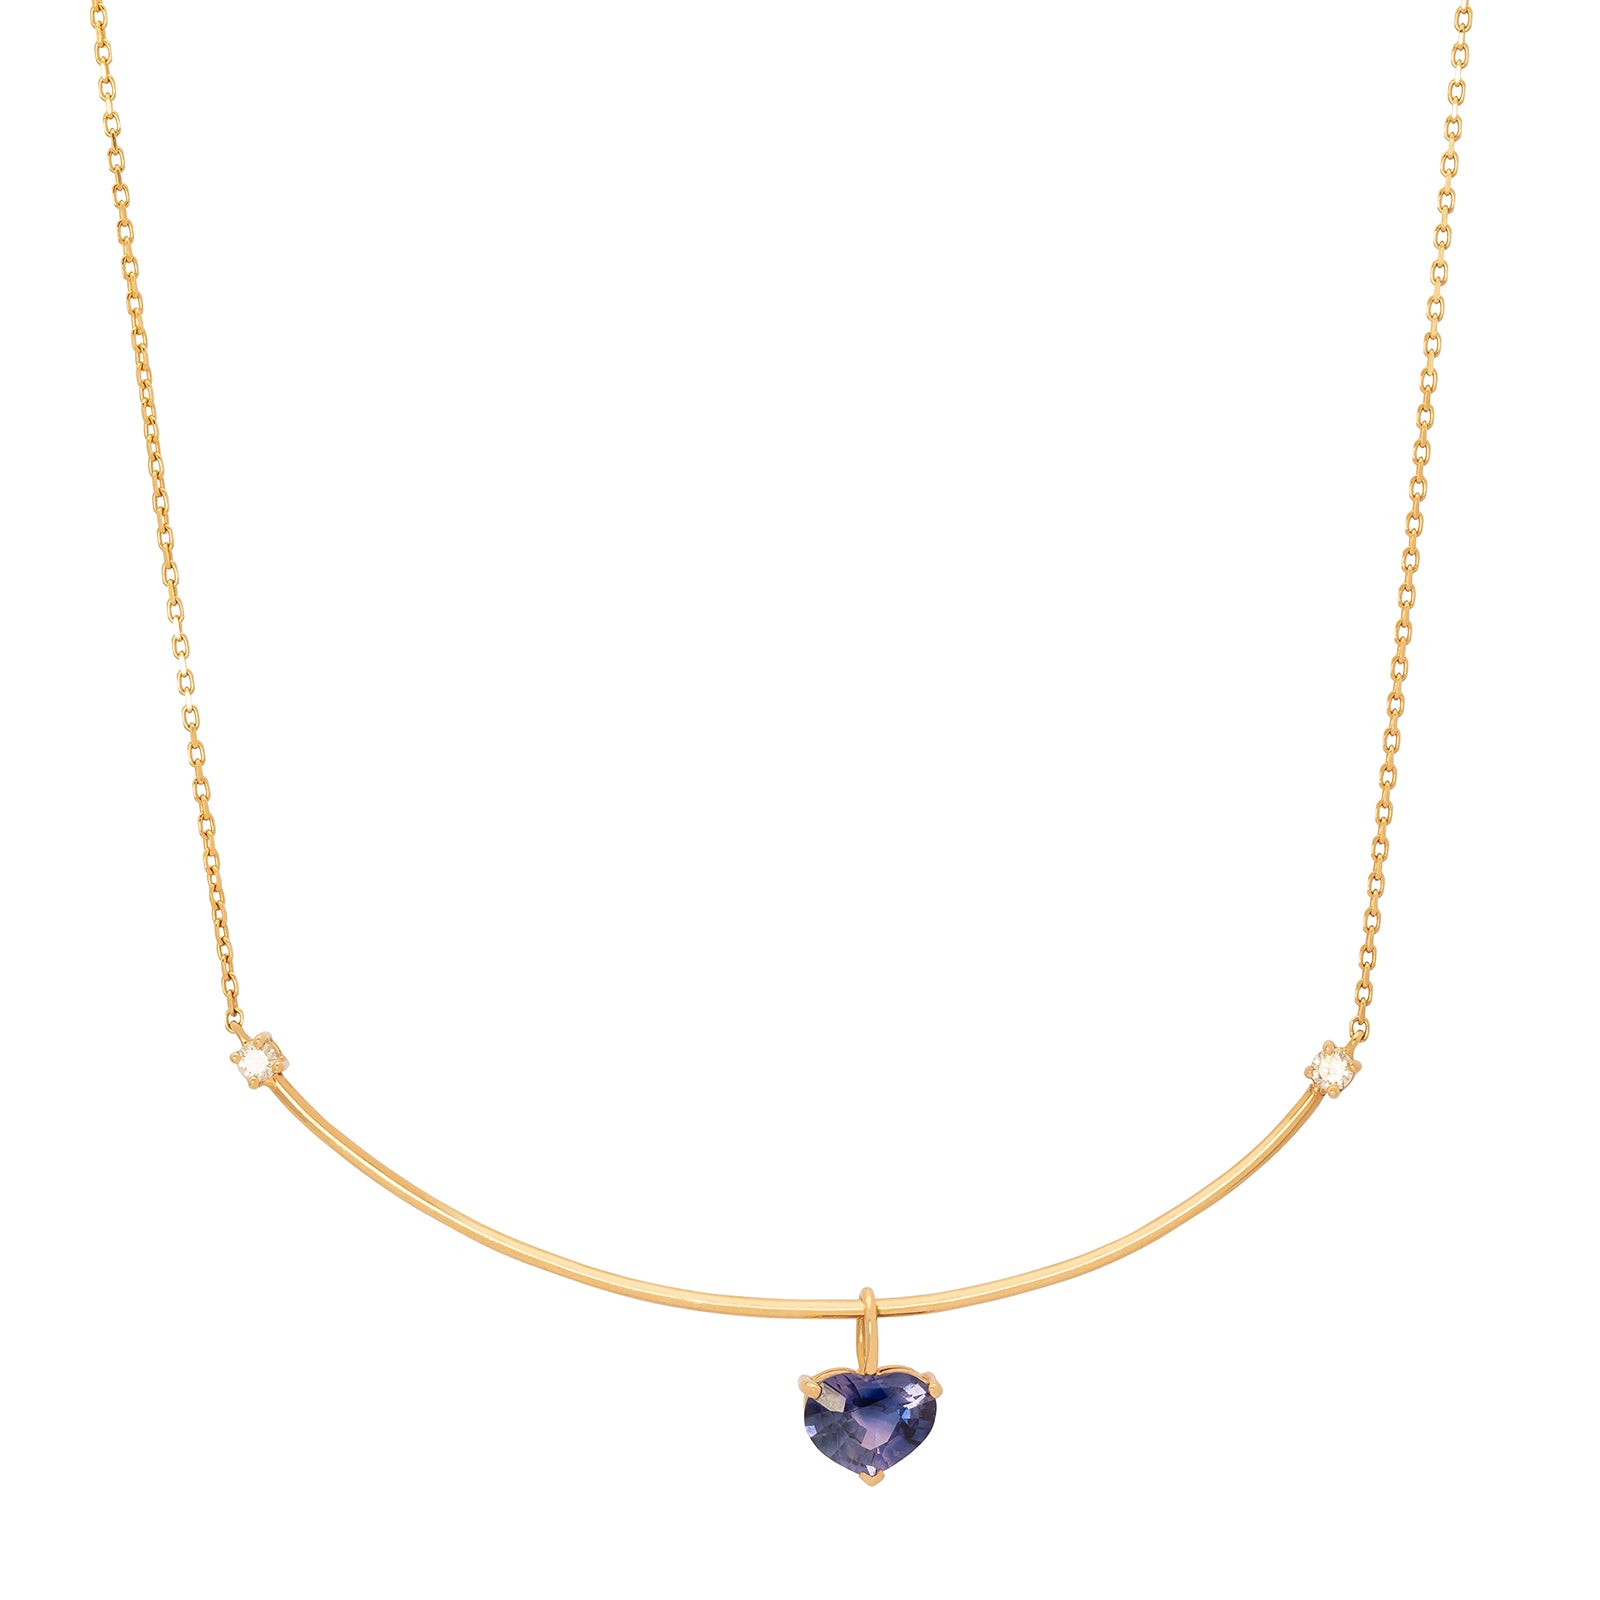 YI Collection Purple Sapphire Heart Necklace - Necklaces - Broken English Jewelry